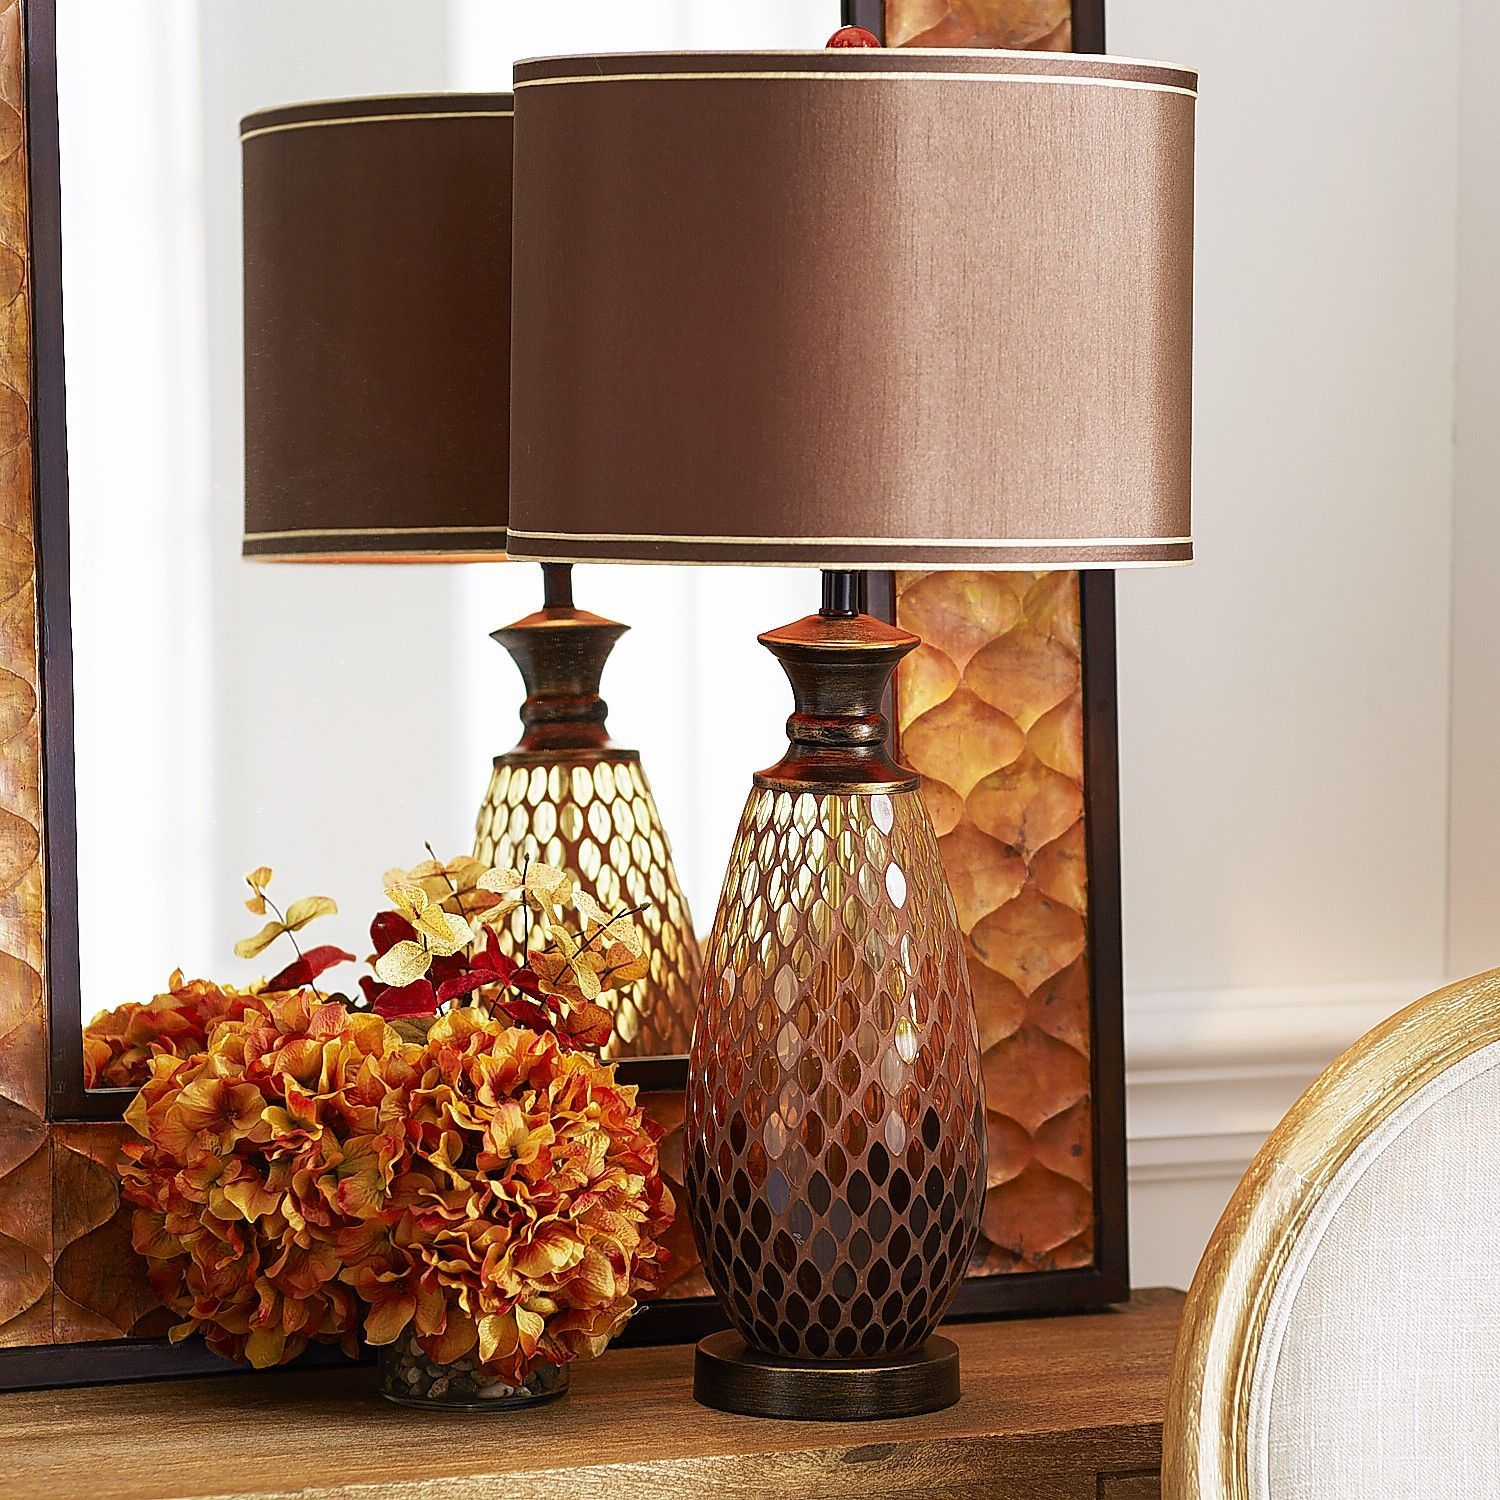 Explore Glass Table Lamps, Pier 1 Imports, And More!